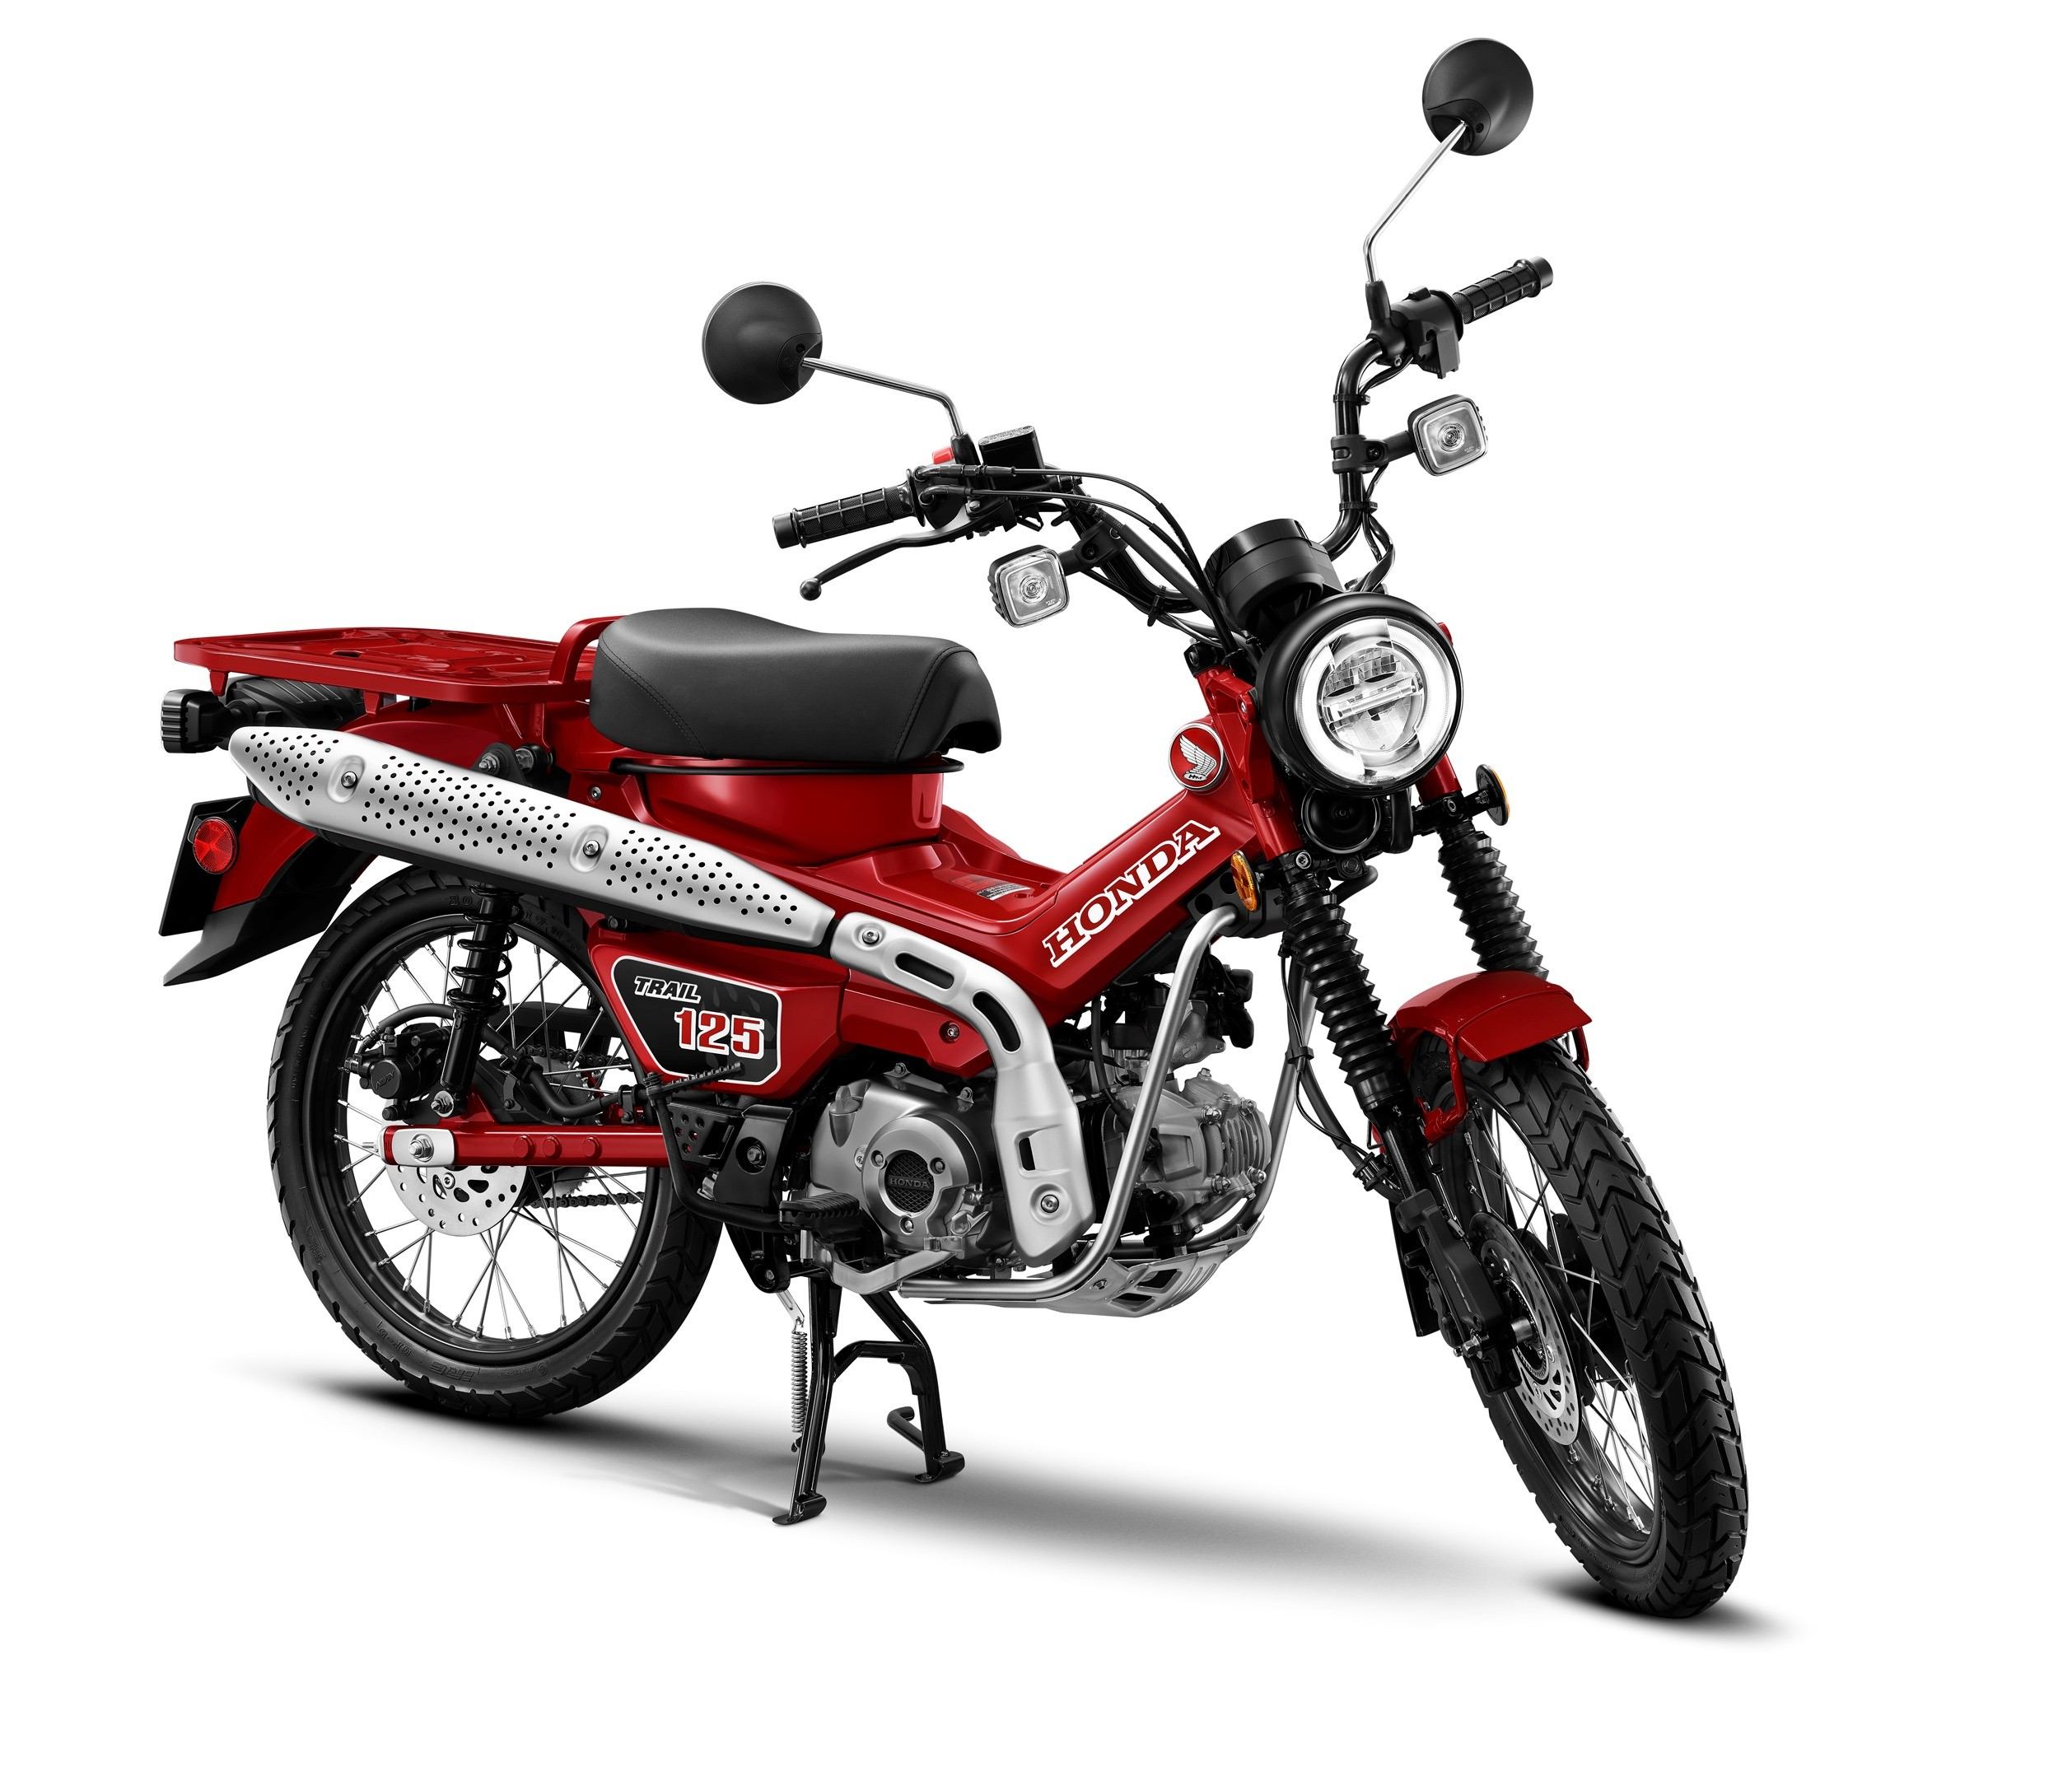 2021 honda mini motorcycle lineup welcomes allnew trail